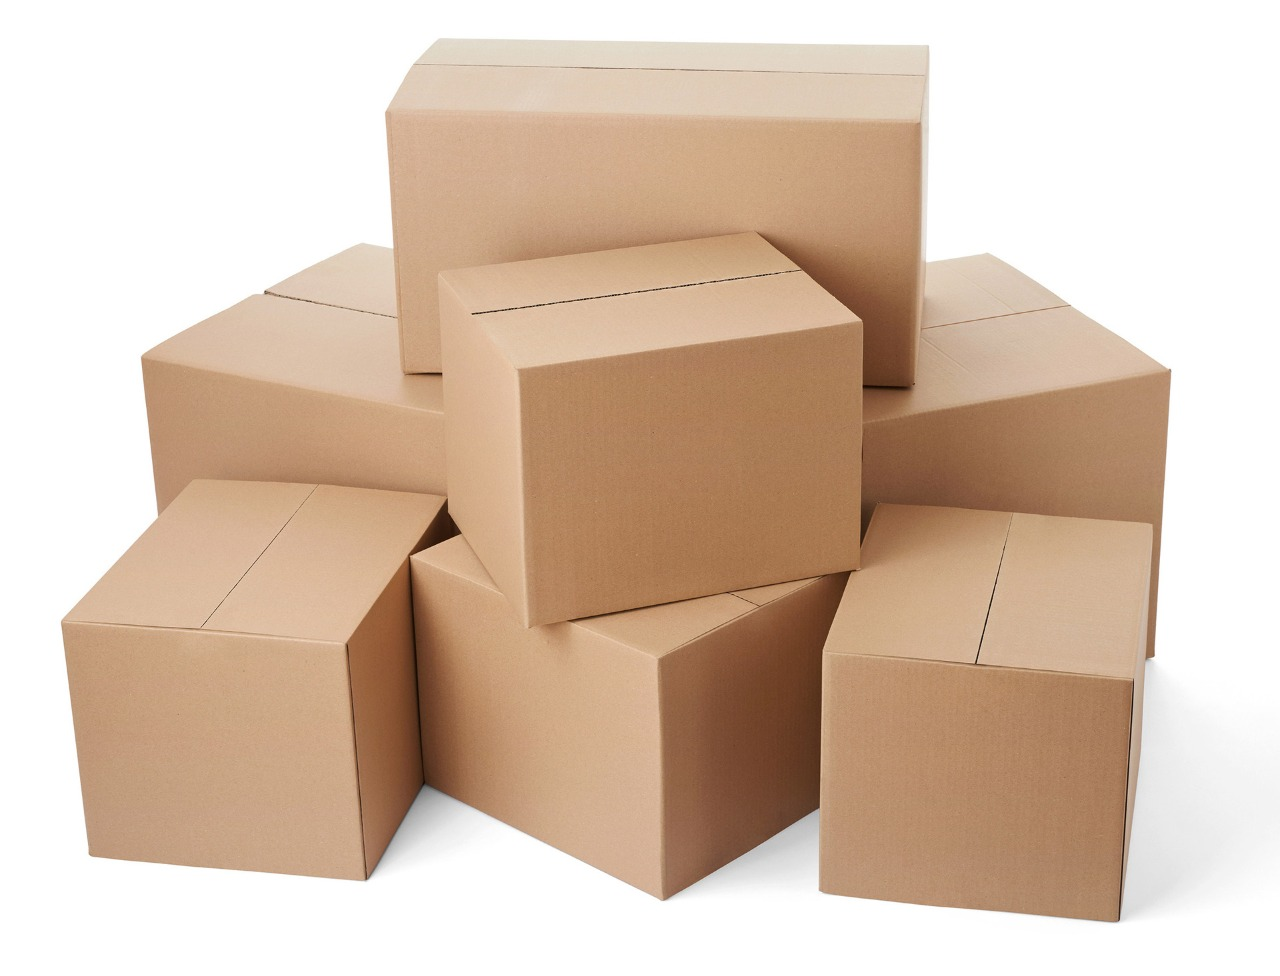 How to Choose the Best Corrugated Boxes for Your New Product